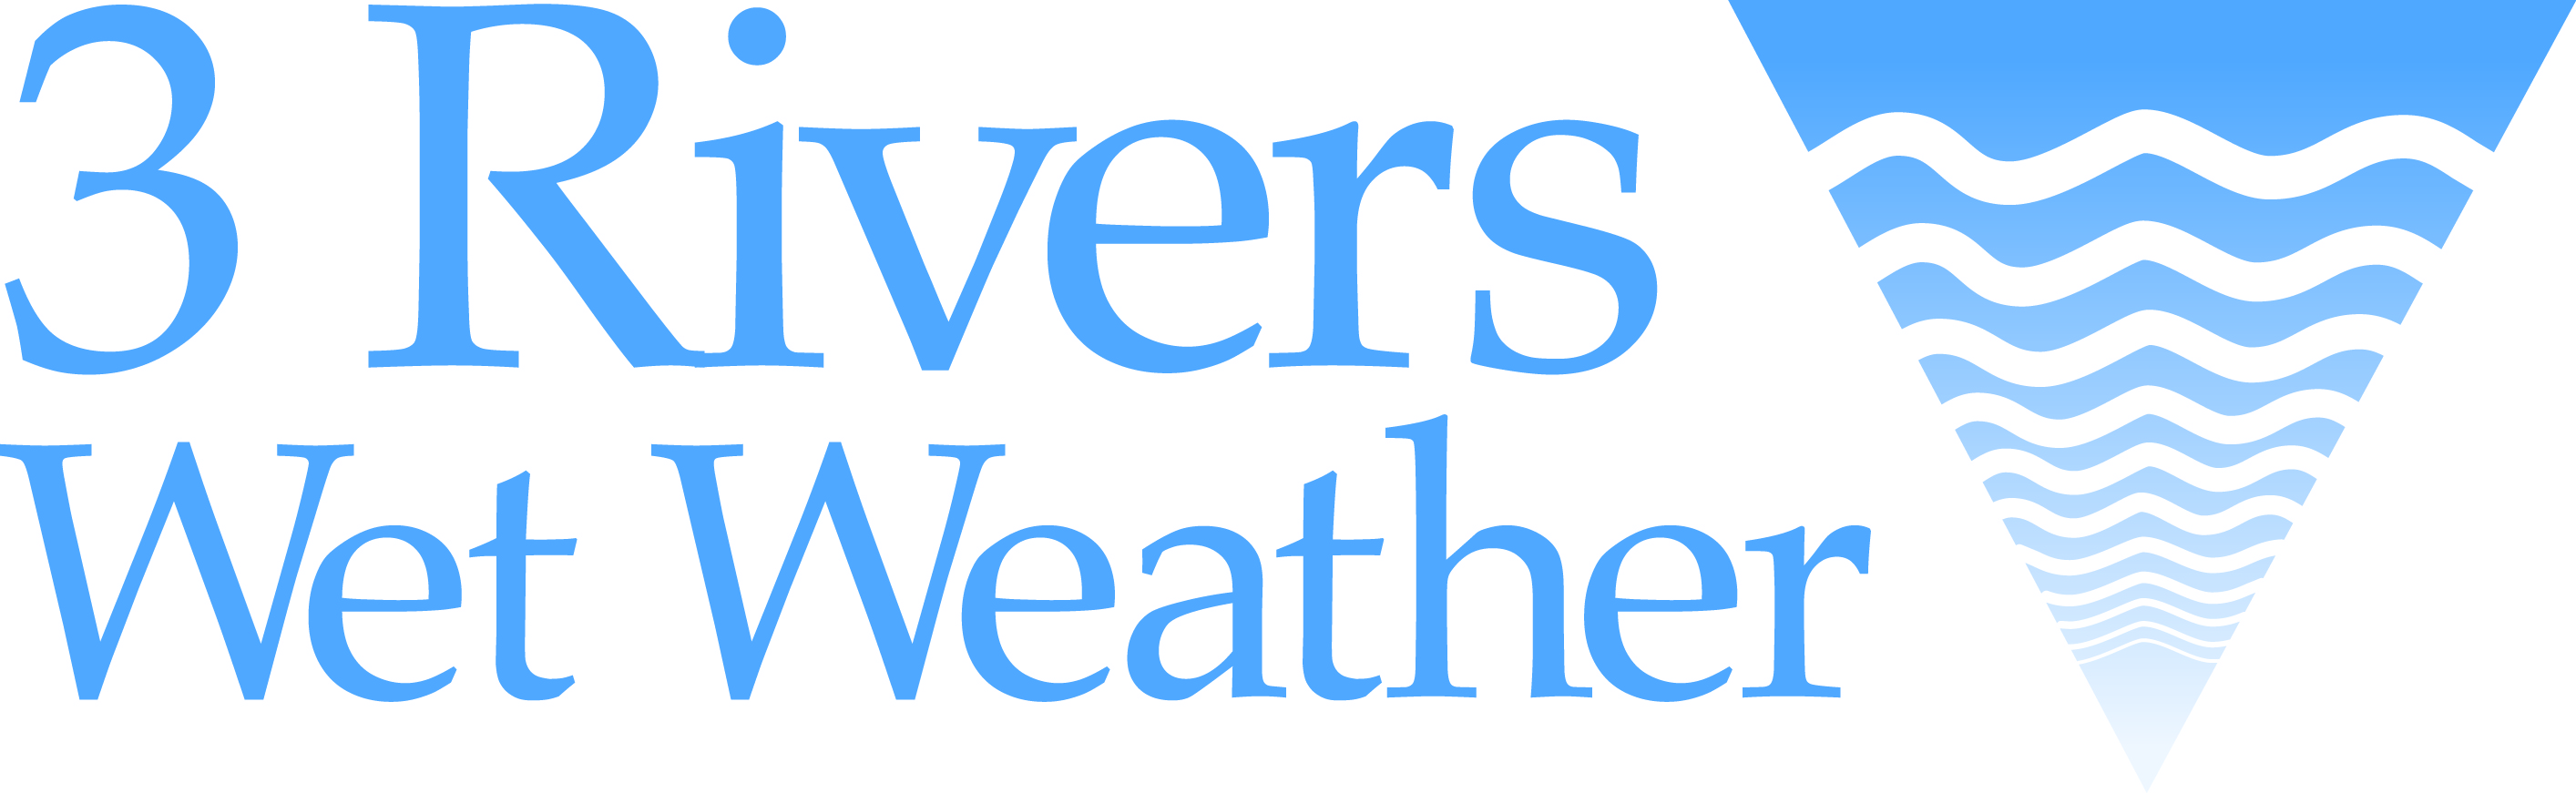 3 Rivers Wet Weather Sewer Conference @ Monroeville Convention Center   Monroeville   Pennsylvania   United States